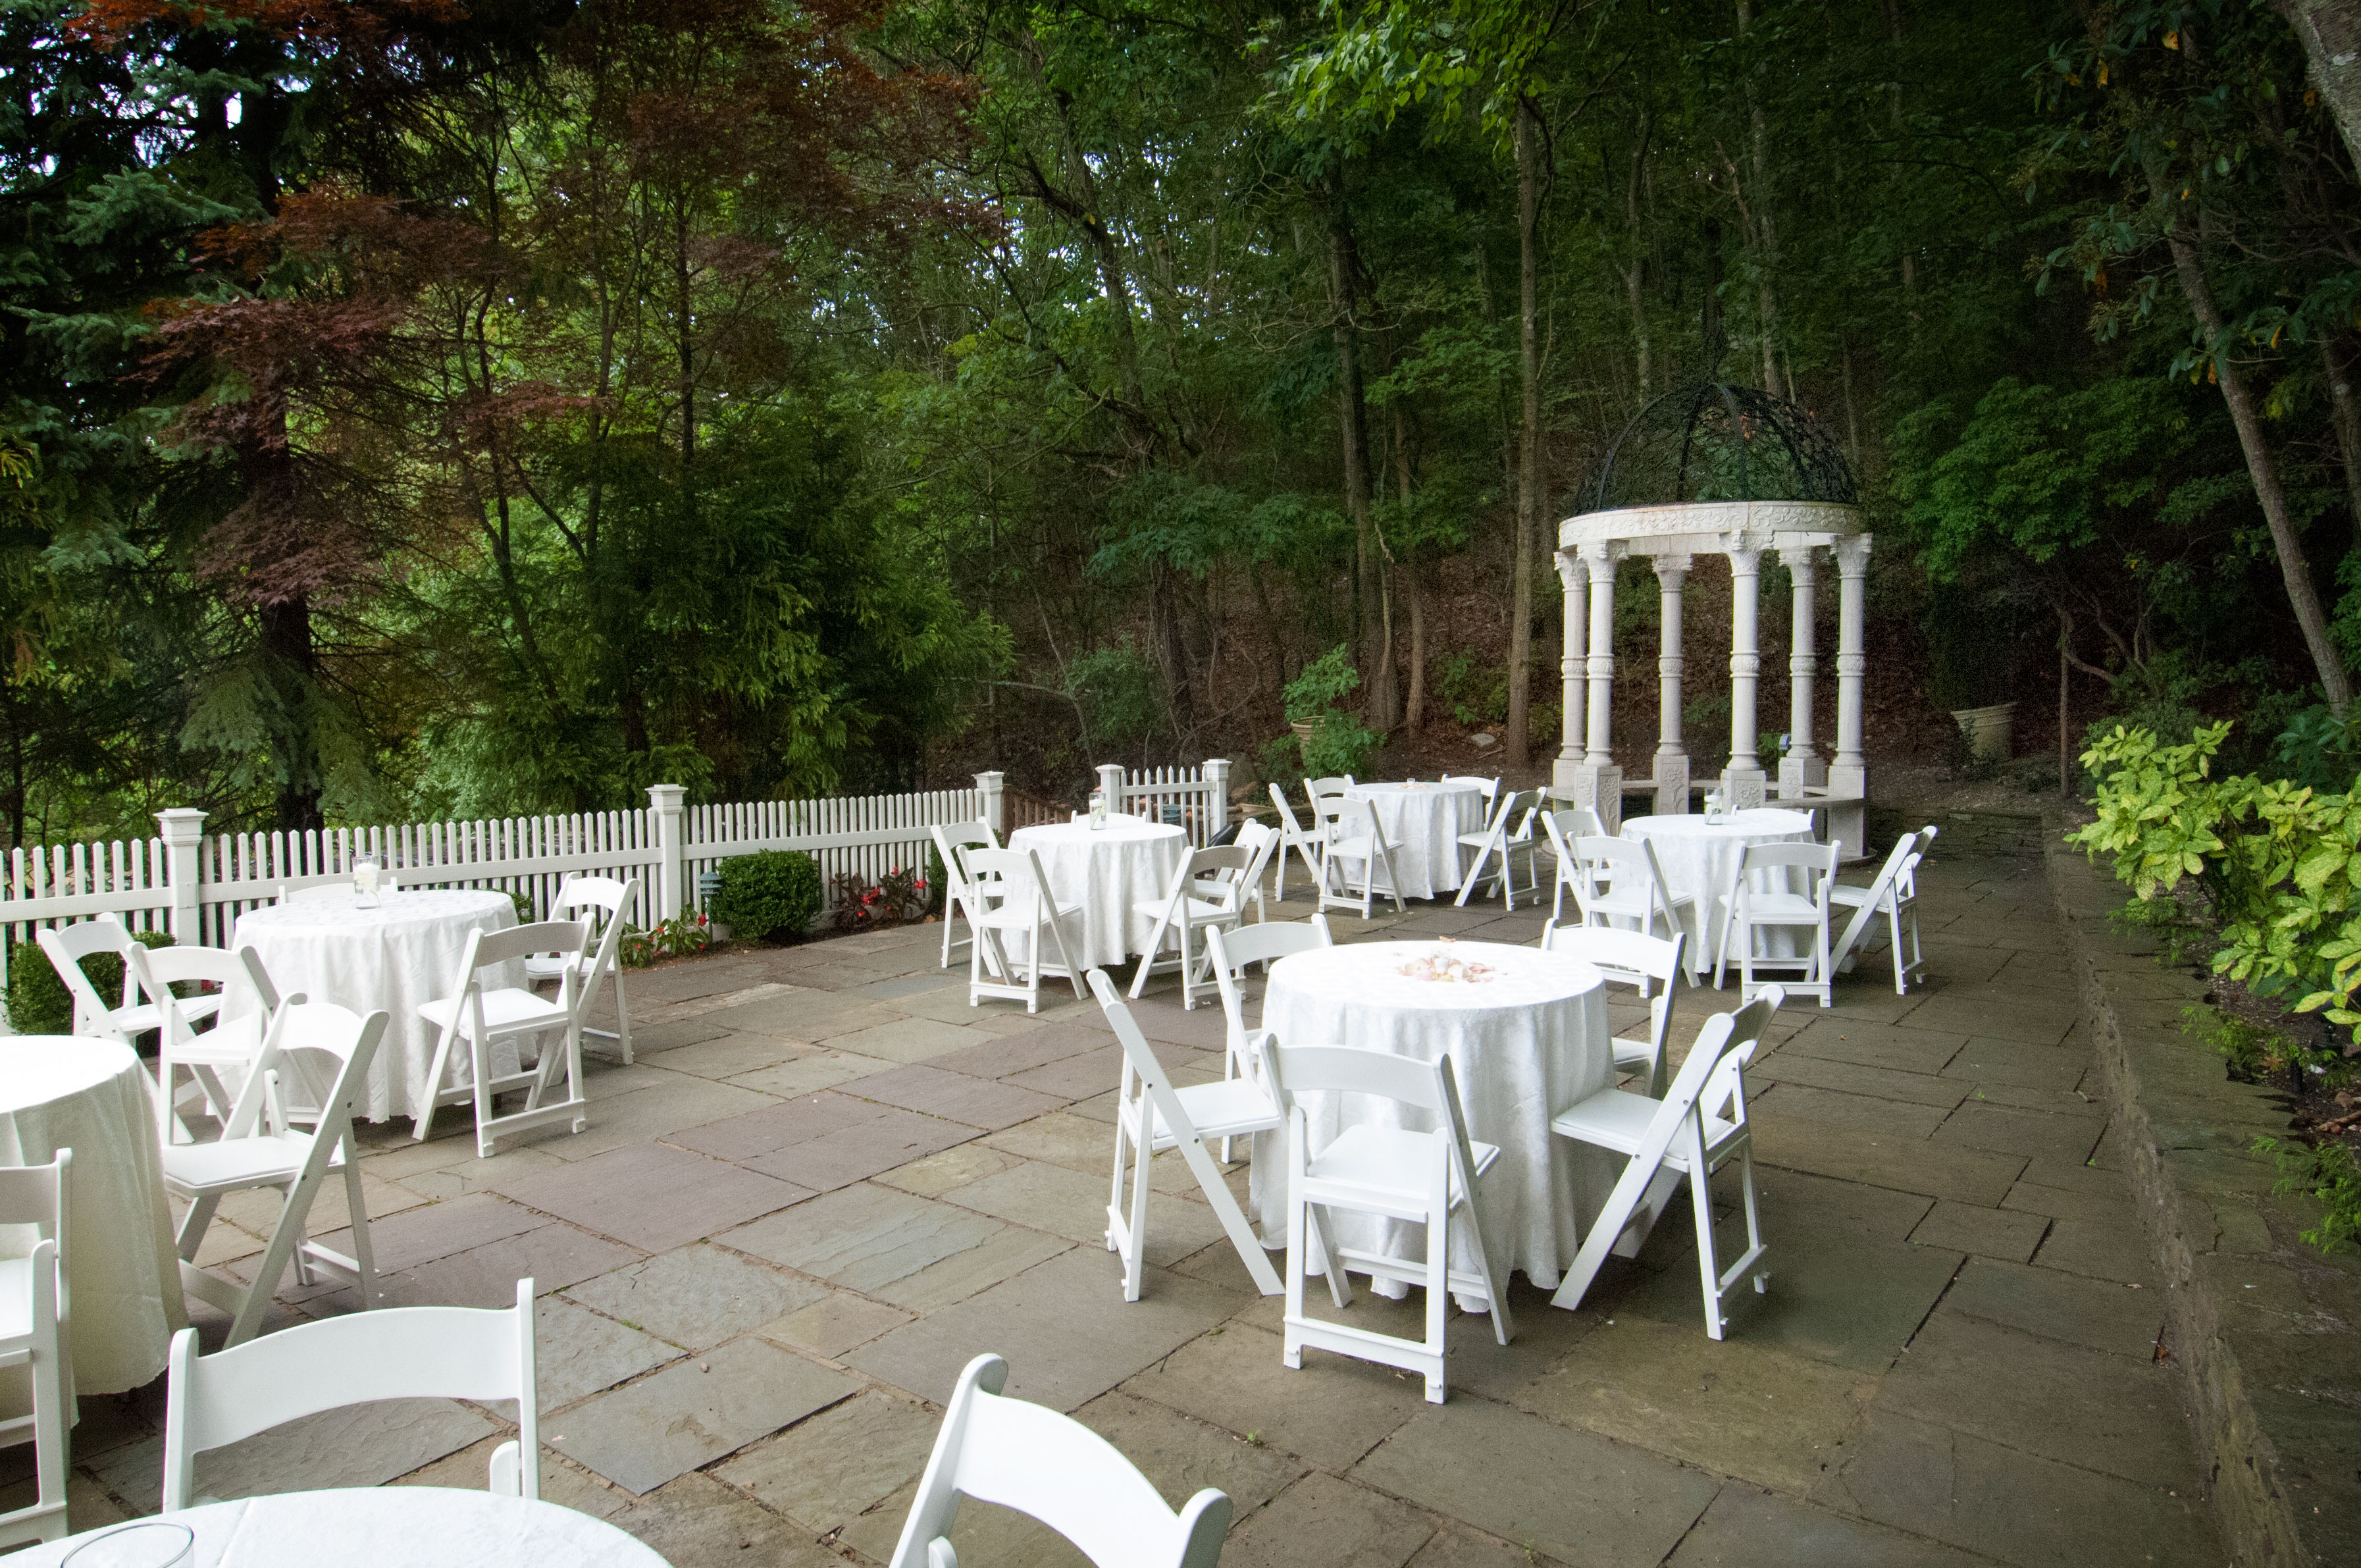 The Crestwood Manor Outdoor Events